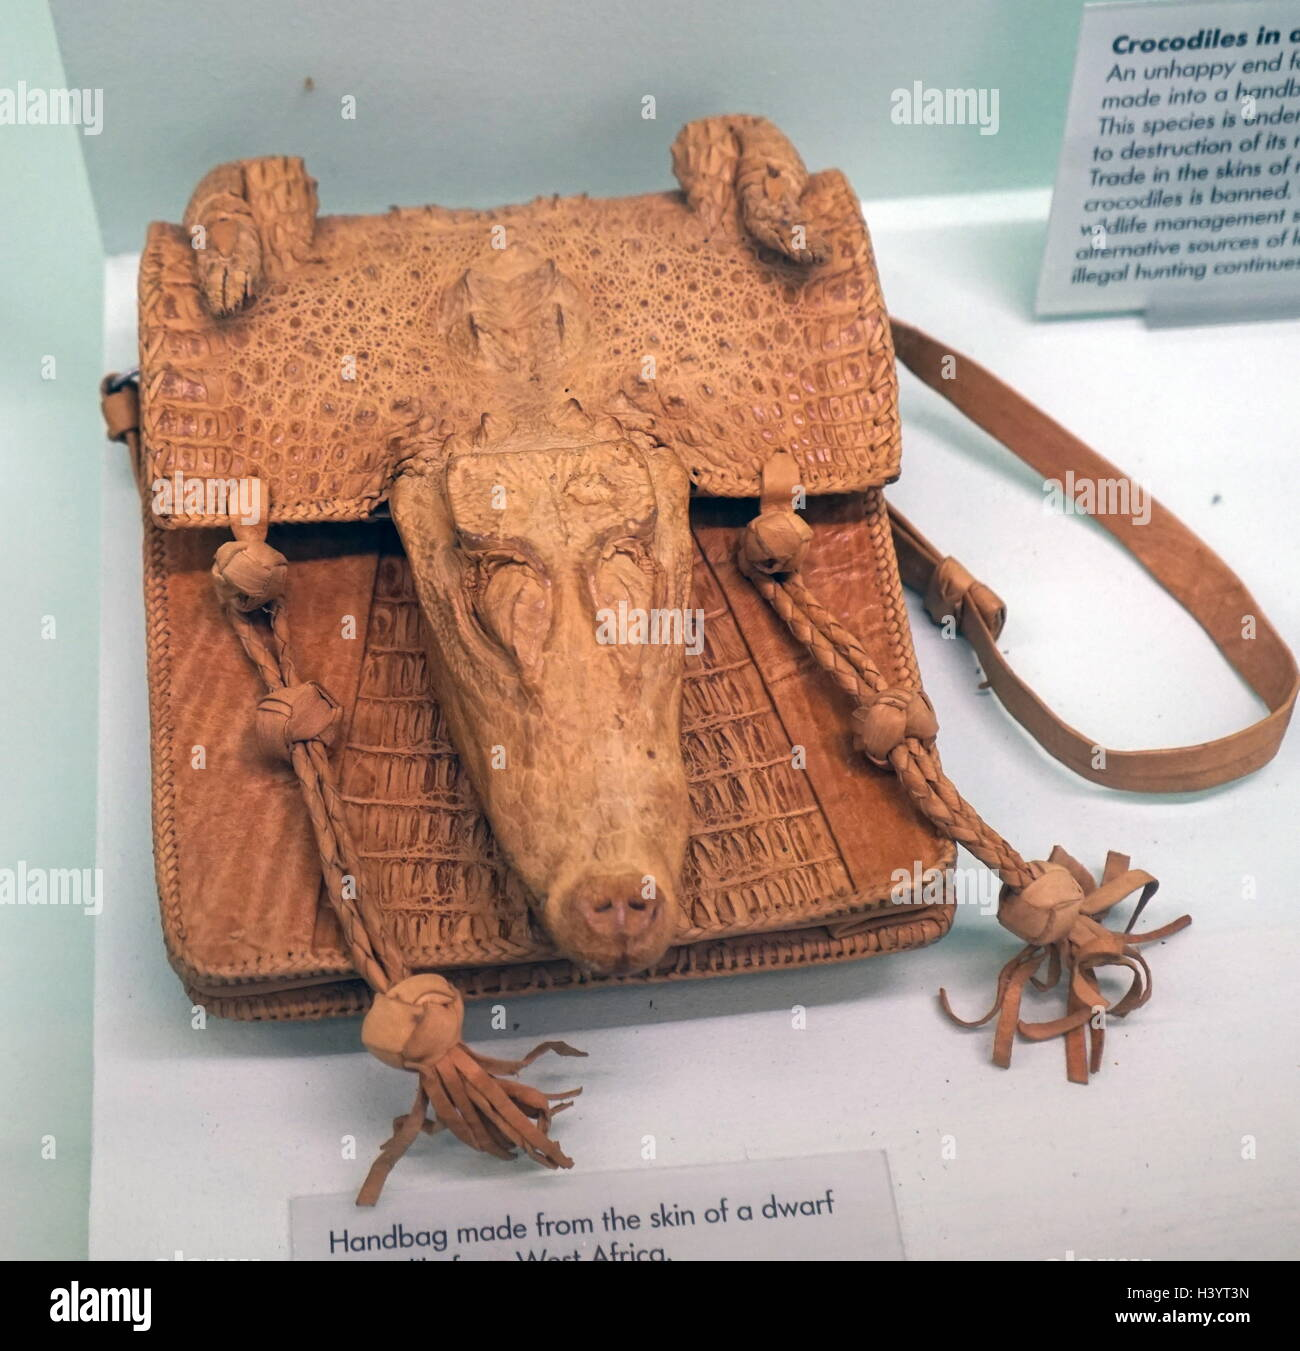 c403860c8 Handbag made from the skin of a dwarf crocodile from West Africa. Dated  20th Century